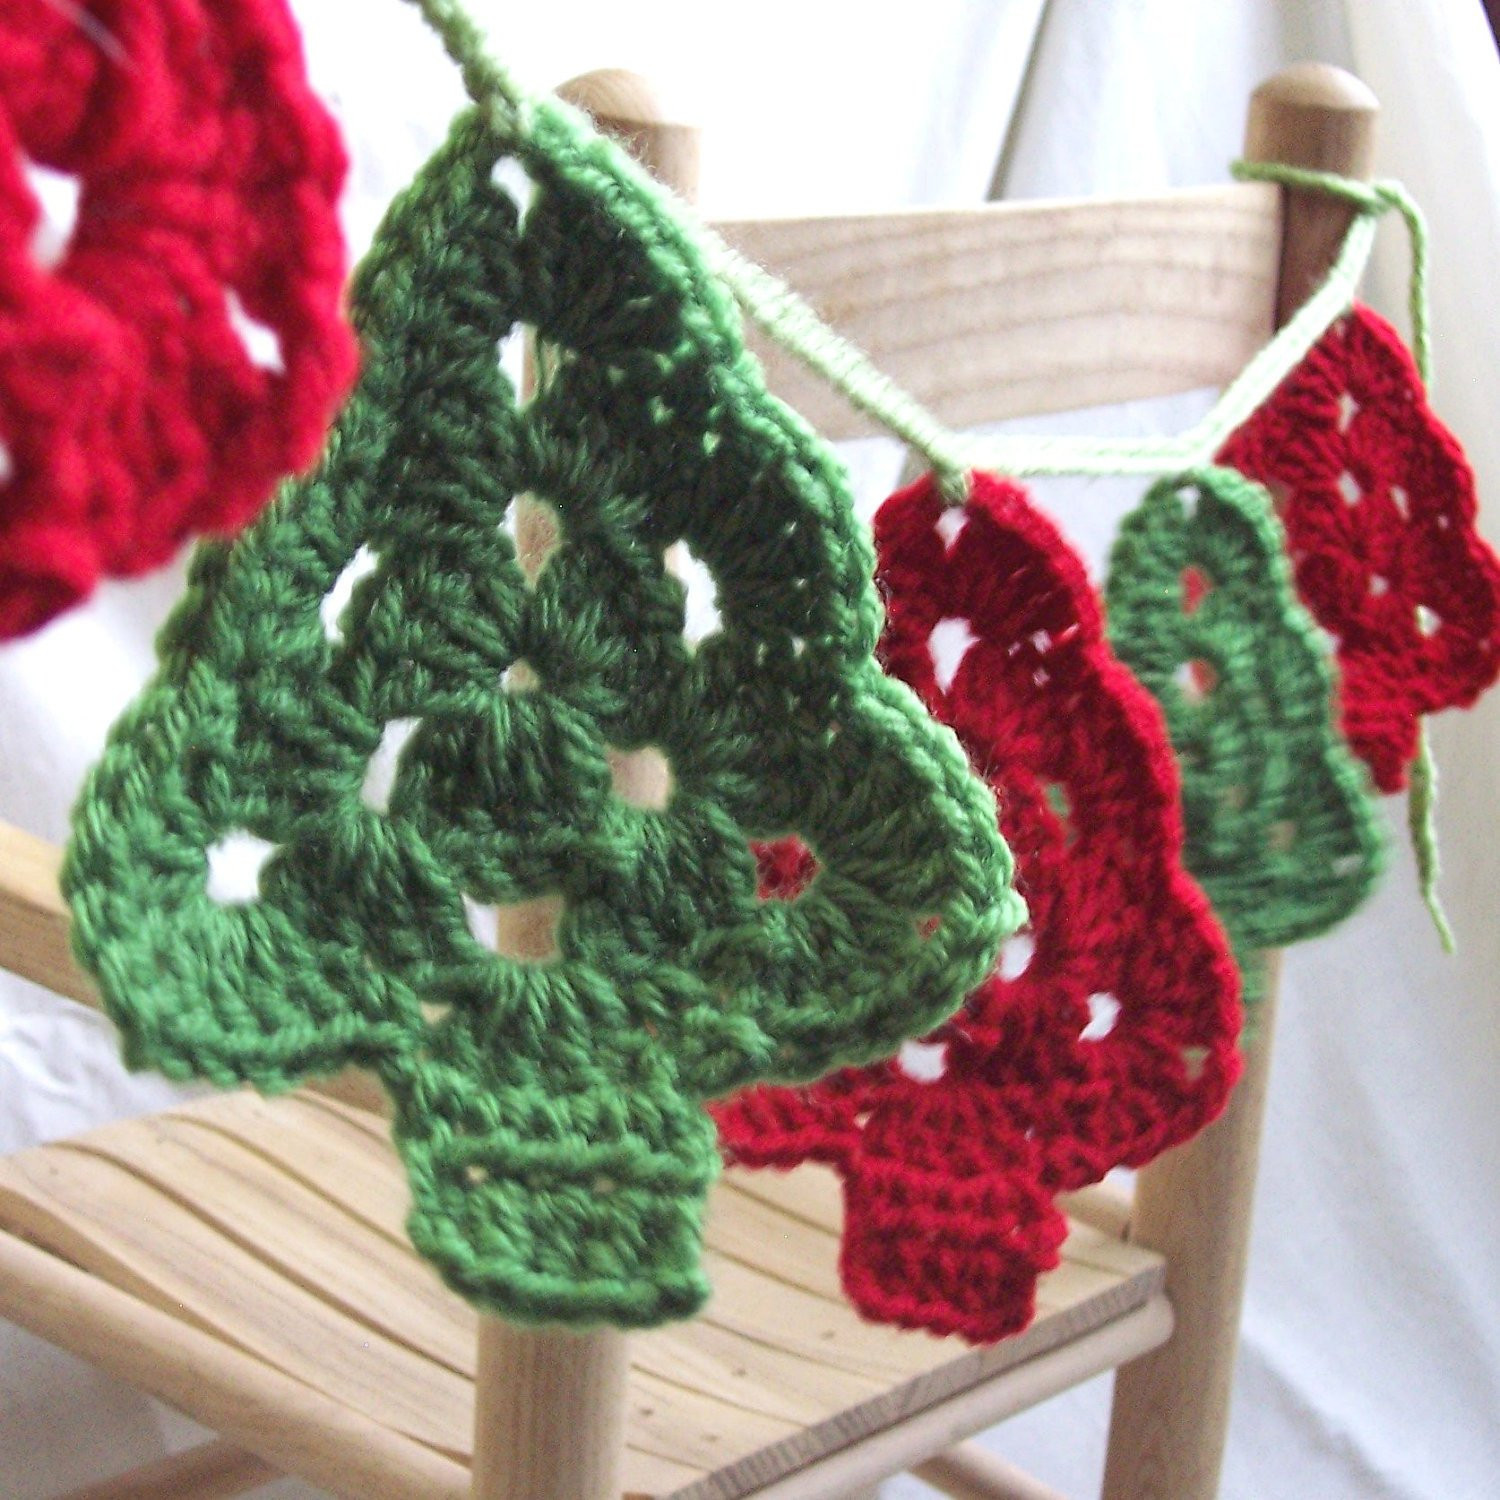 Crochet Christmas Tree Beautiful Christmas Trees Crochet Garland Granny Tree Style Bunting Of Amazing 42 Ideas Crochet Christmas Tree